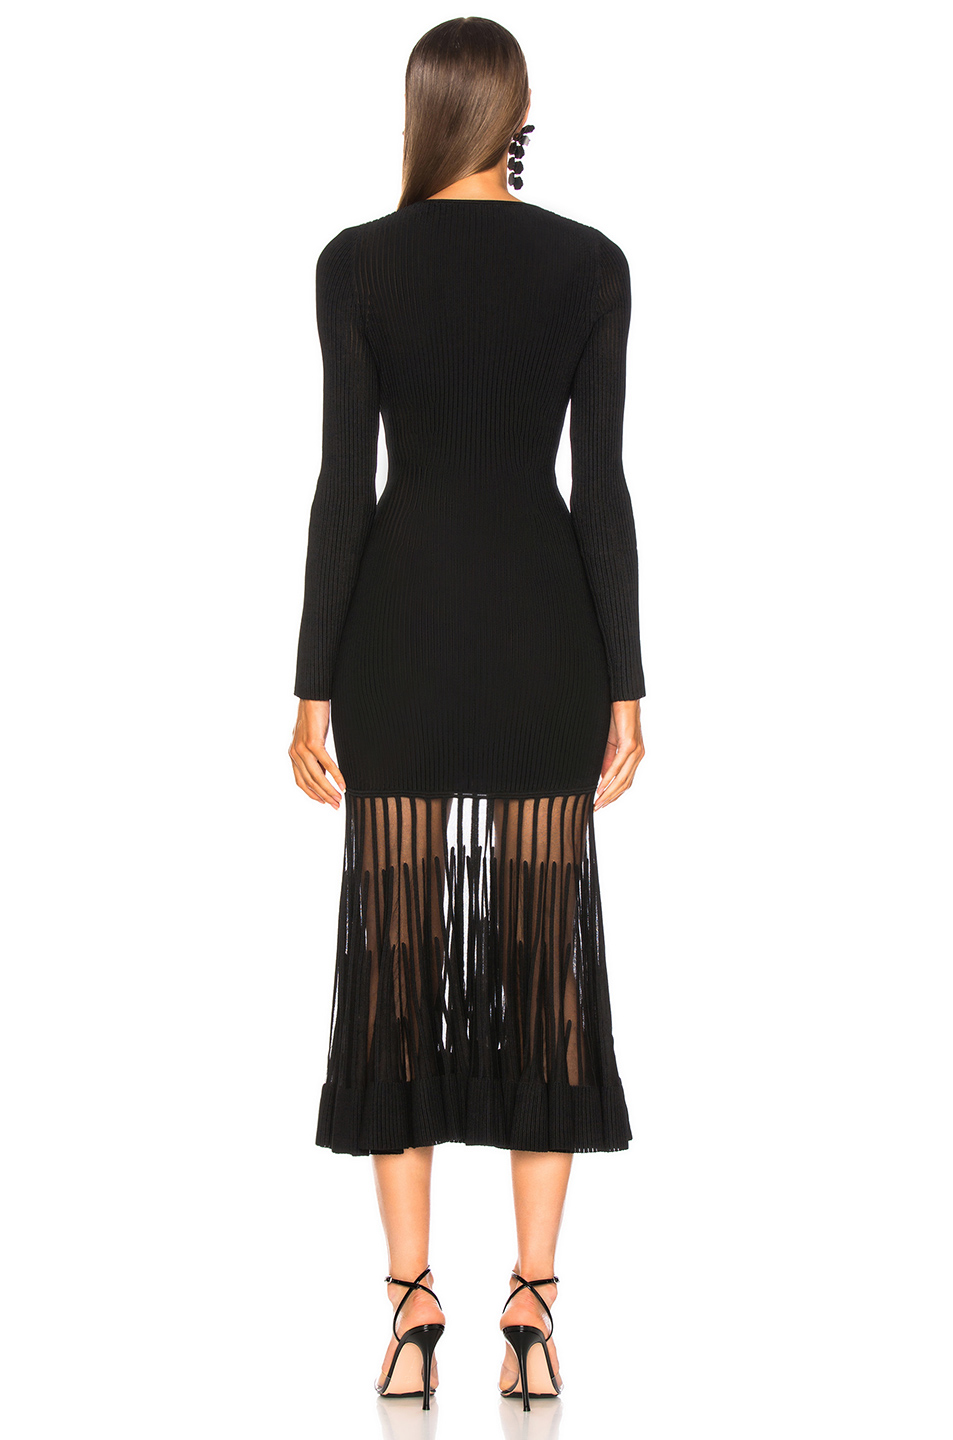 9afc43e280c9e Jual Alexander McQueen Graphic Ottoman Knit Maxi Dress - 100 ...